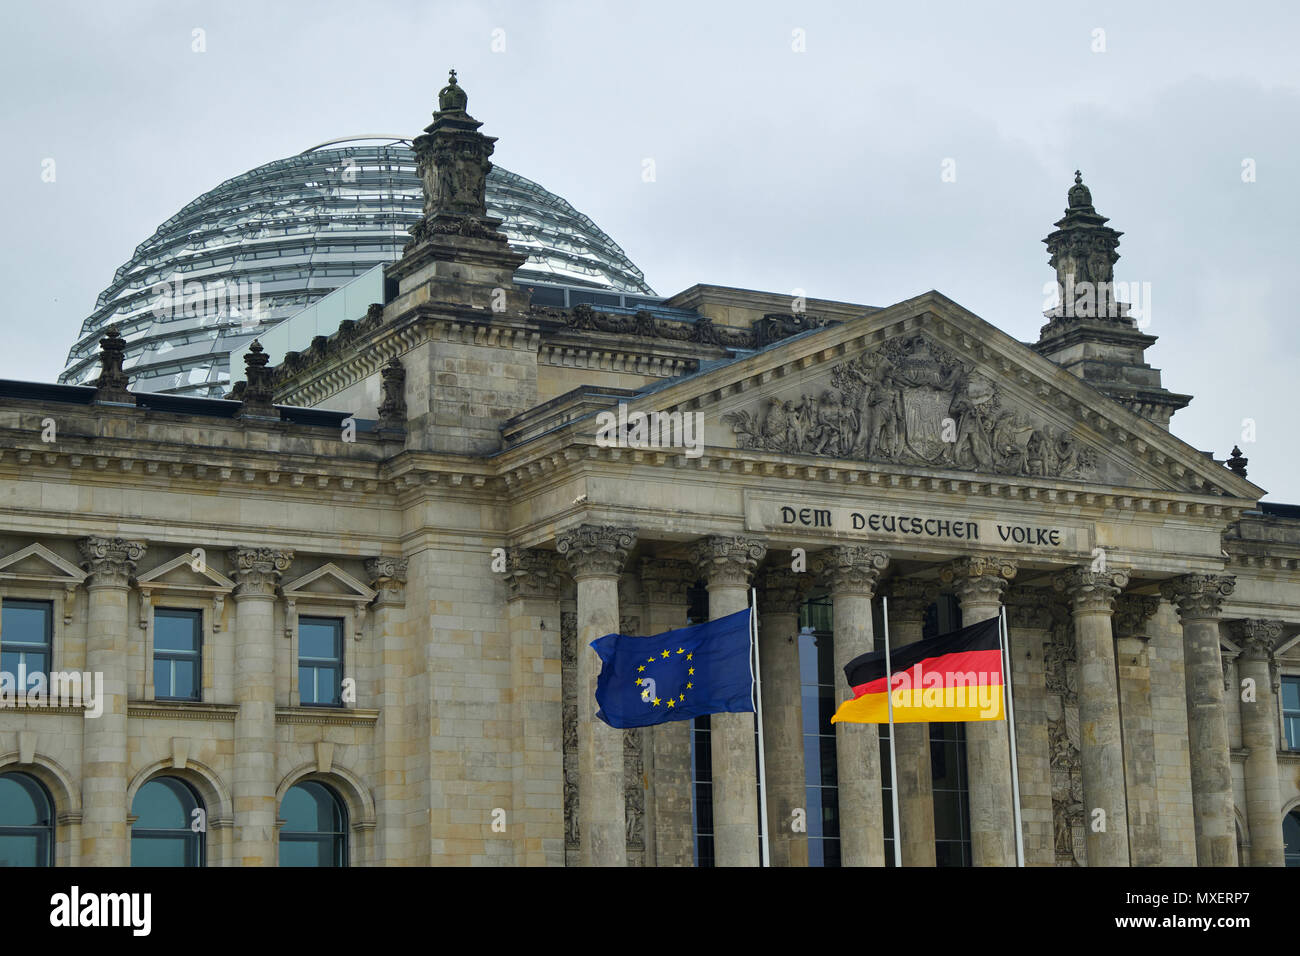 Berlin, Germany - April 14, 2018: Fronton with columns and dome of Reichstag building with German and European Union Flags on the foreground - Stock Image